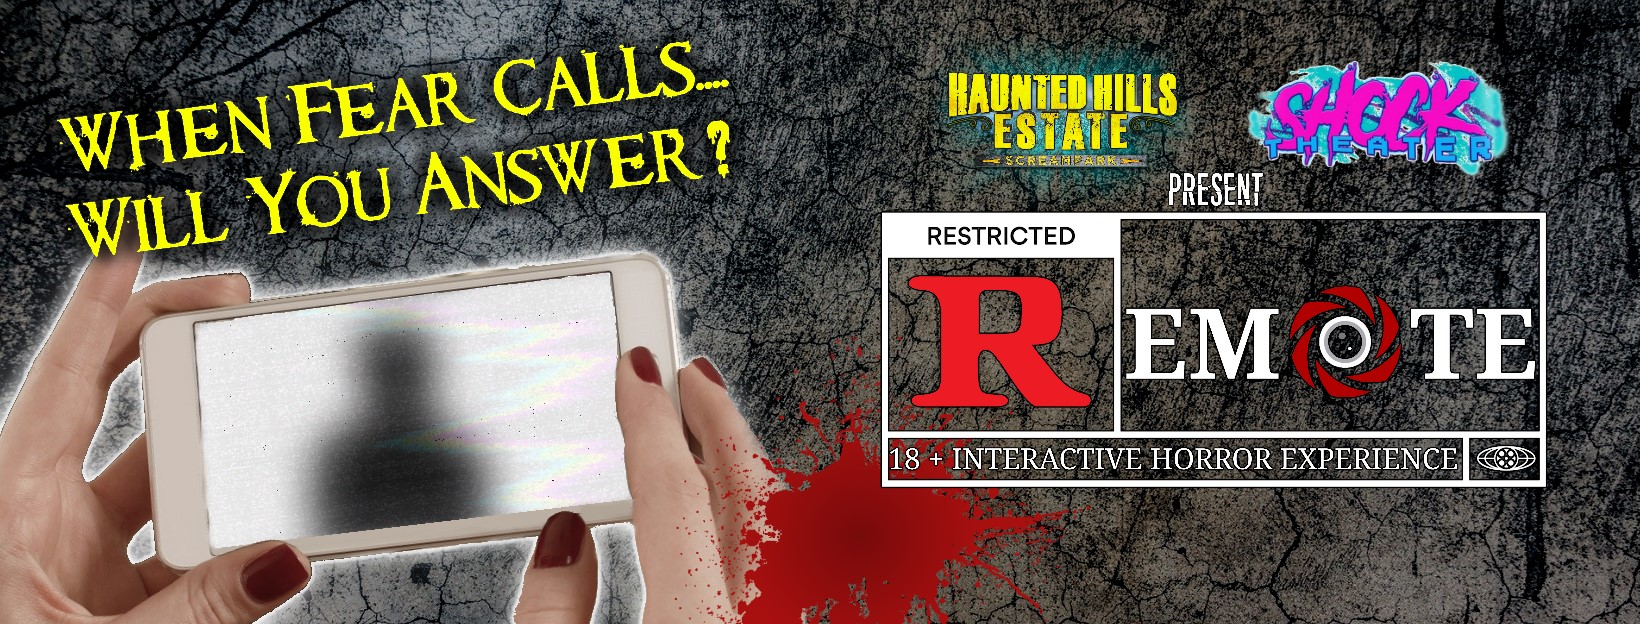 "Socially Distant Scares: Pennsylvania Haunted Attraction To Launch ""Mobile Horror Experience"""